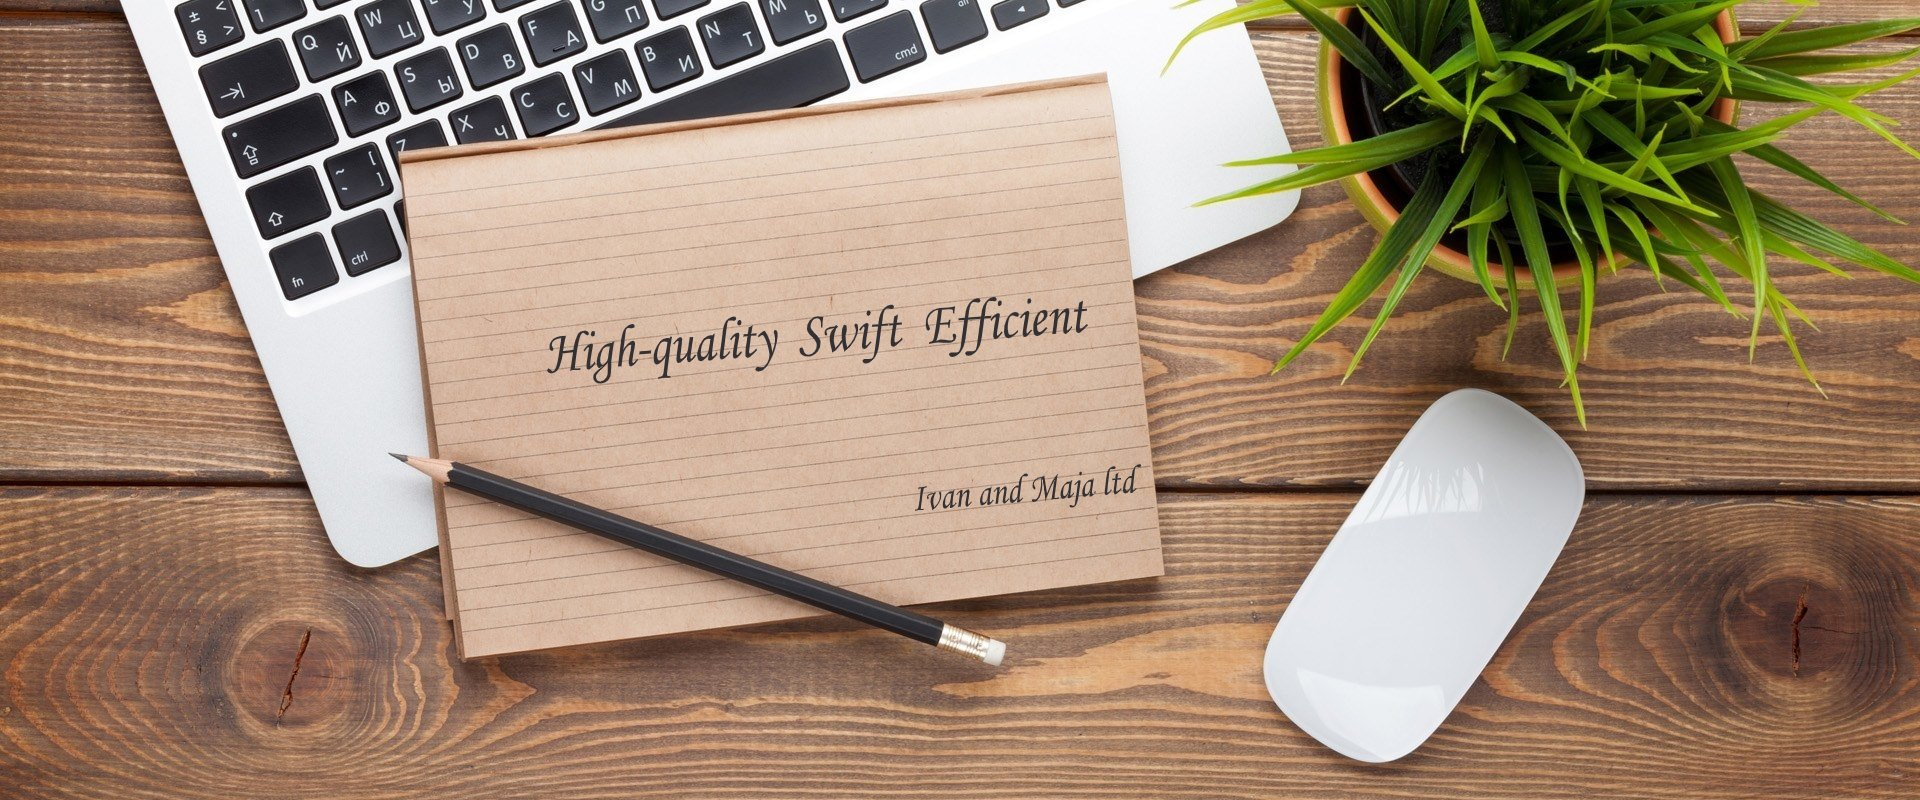 Swift, efficient and high-quality translating documents for english and german Belgrade